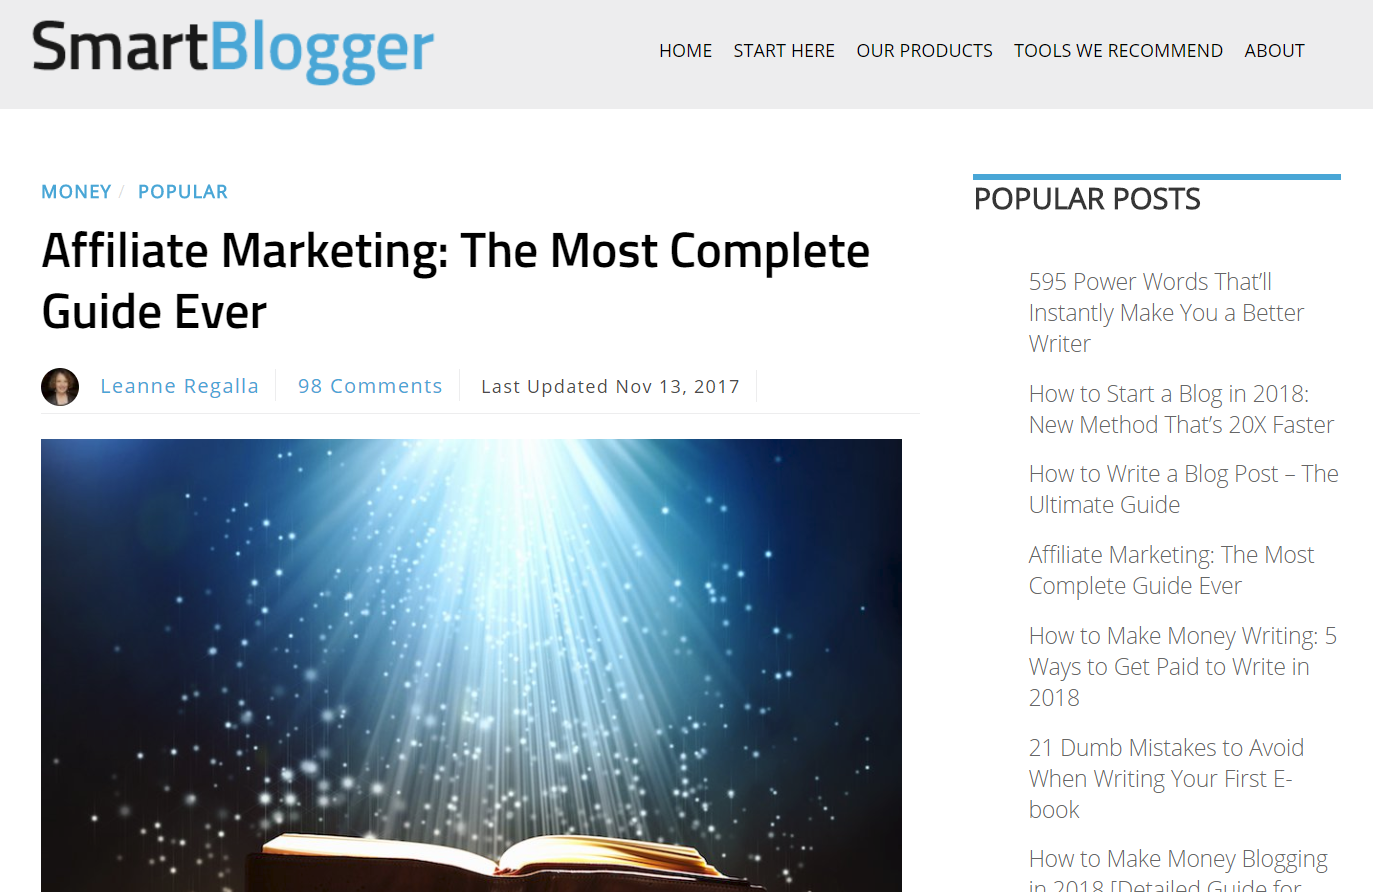 smartblogger-blog-example